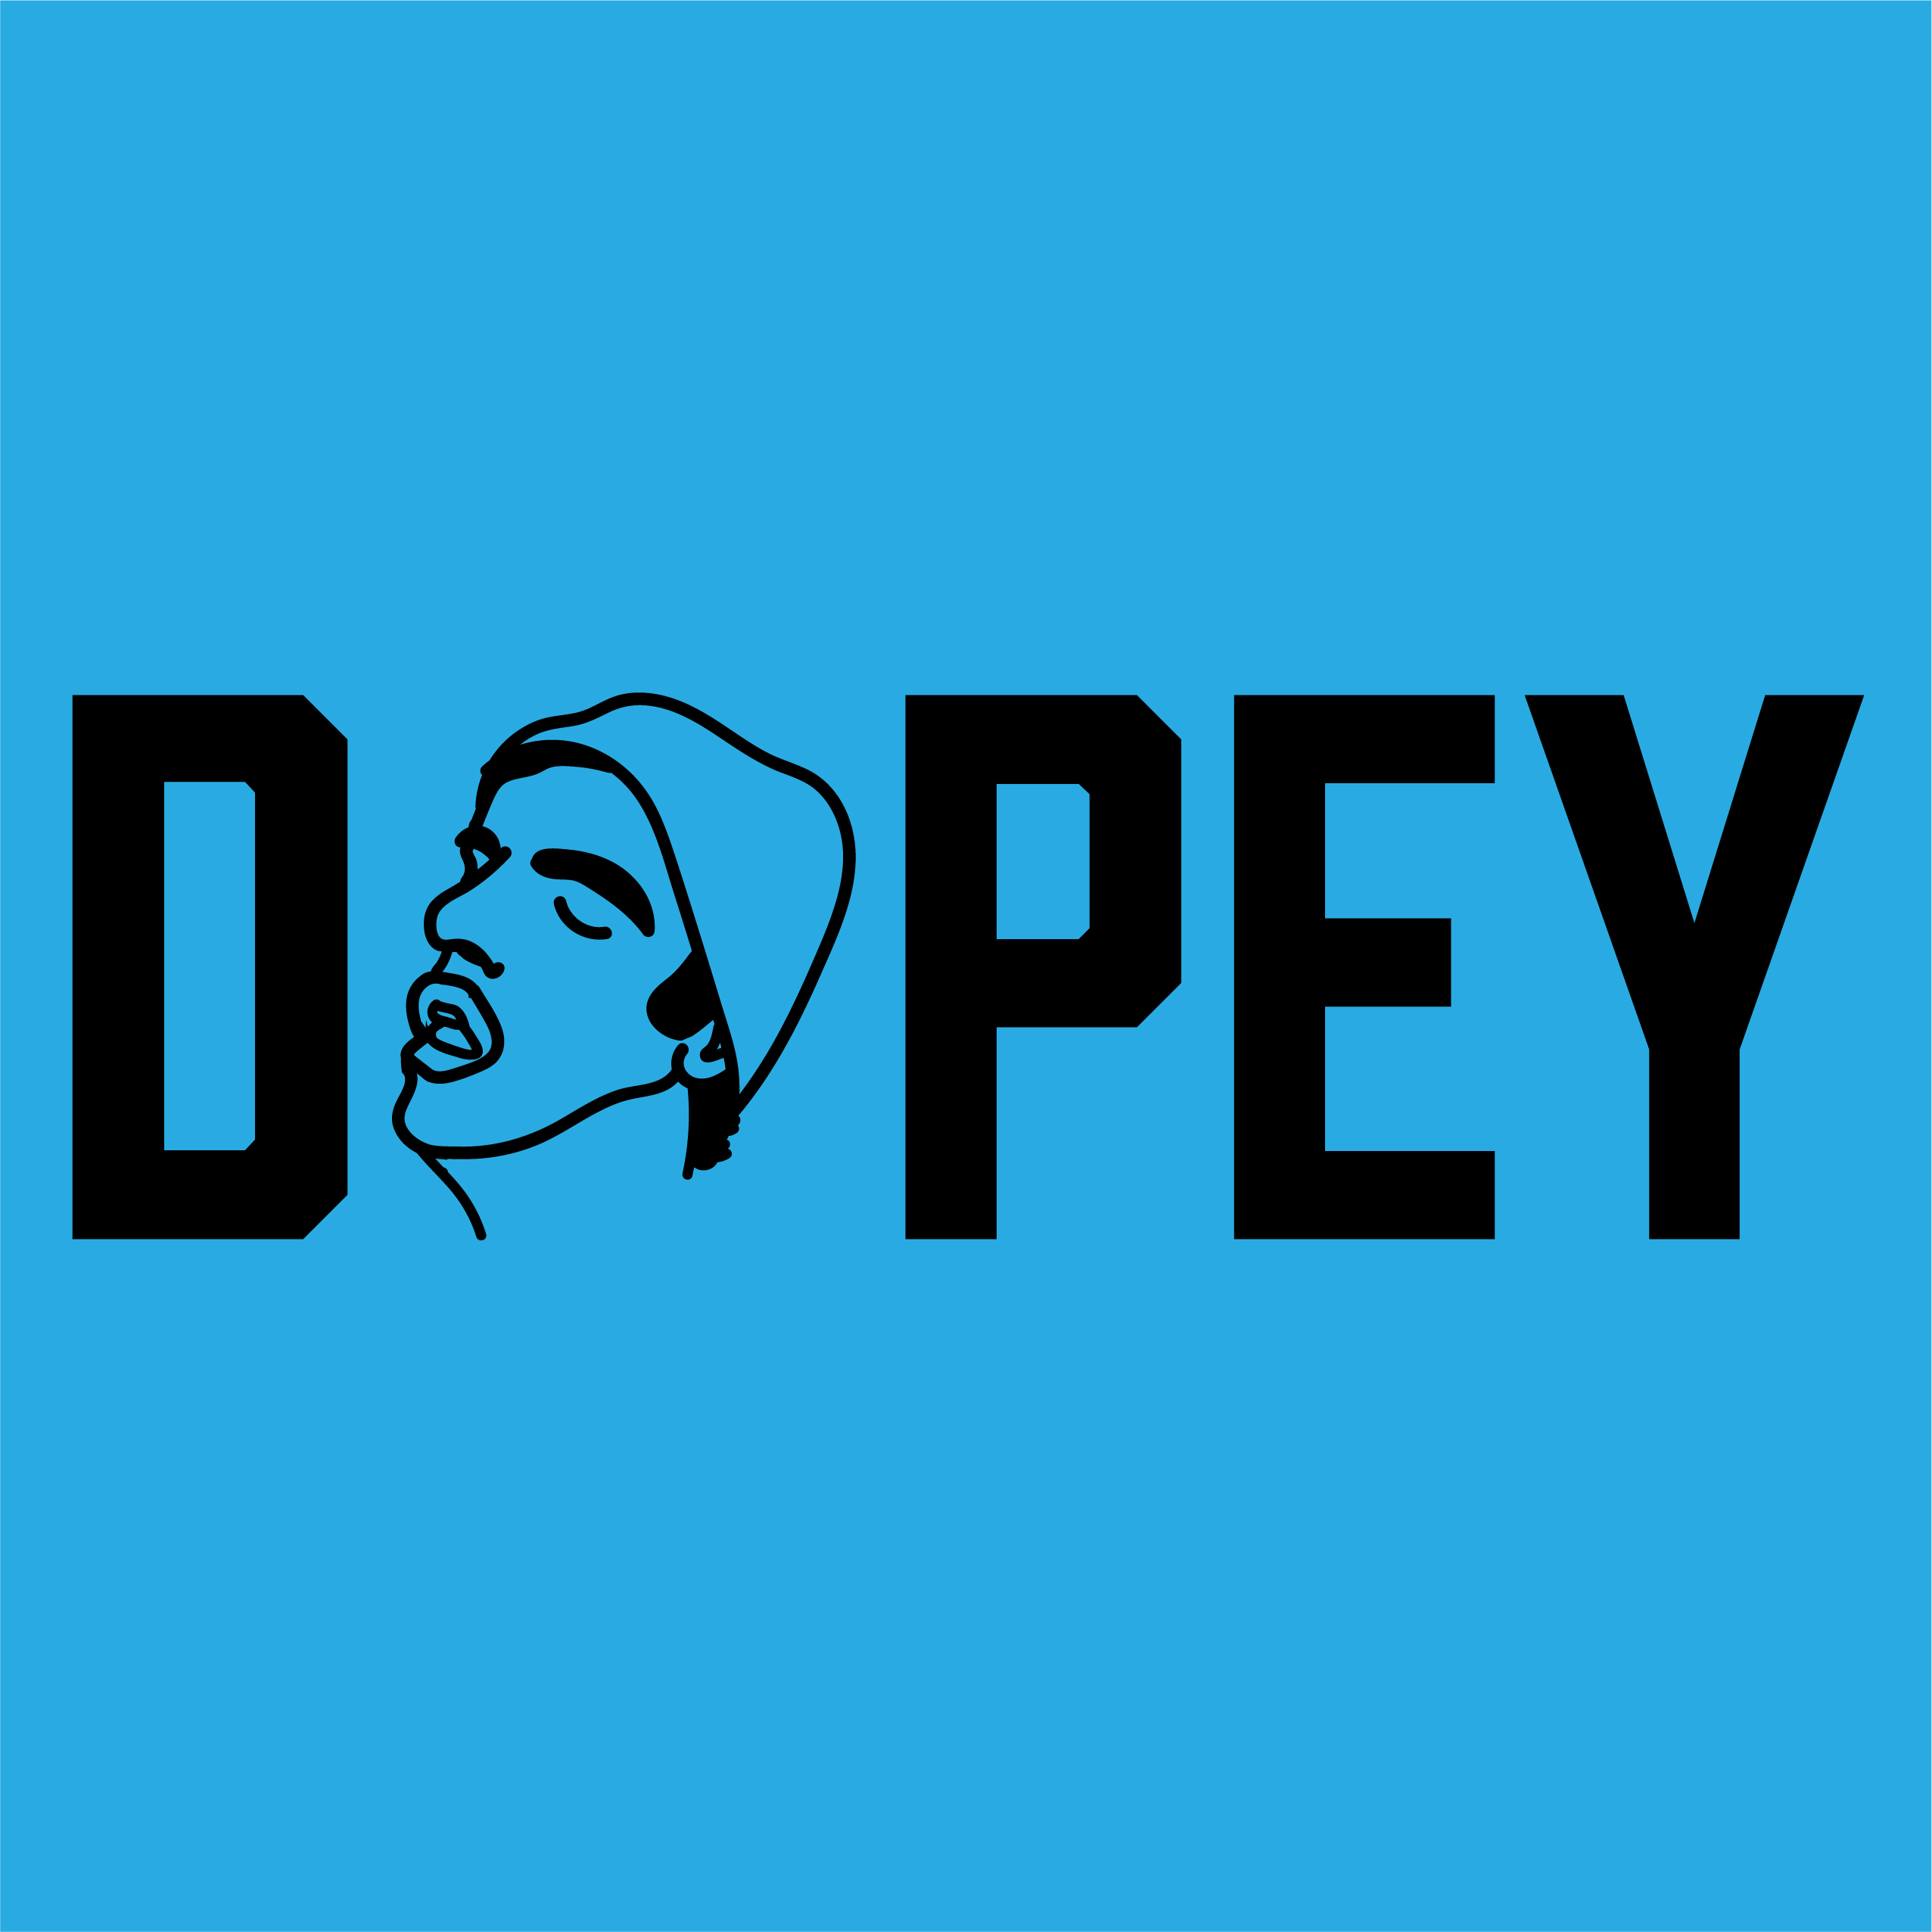 Dopey 186 Amy Dresner and the Dopey Business; Meth, Woke, White Privilege, Heroin, seizures, Higher Power, Bachelor Party, Recovery